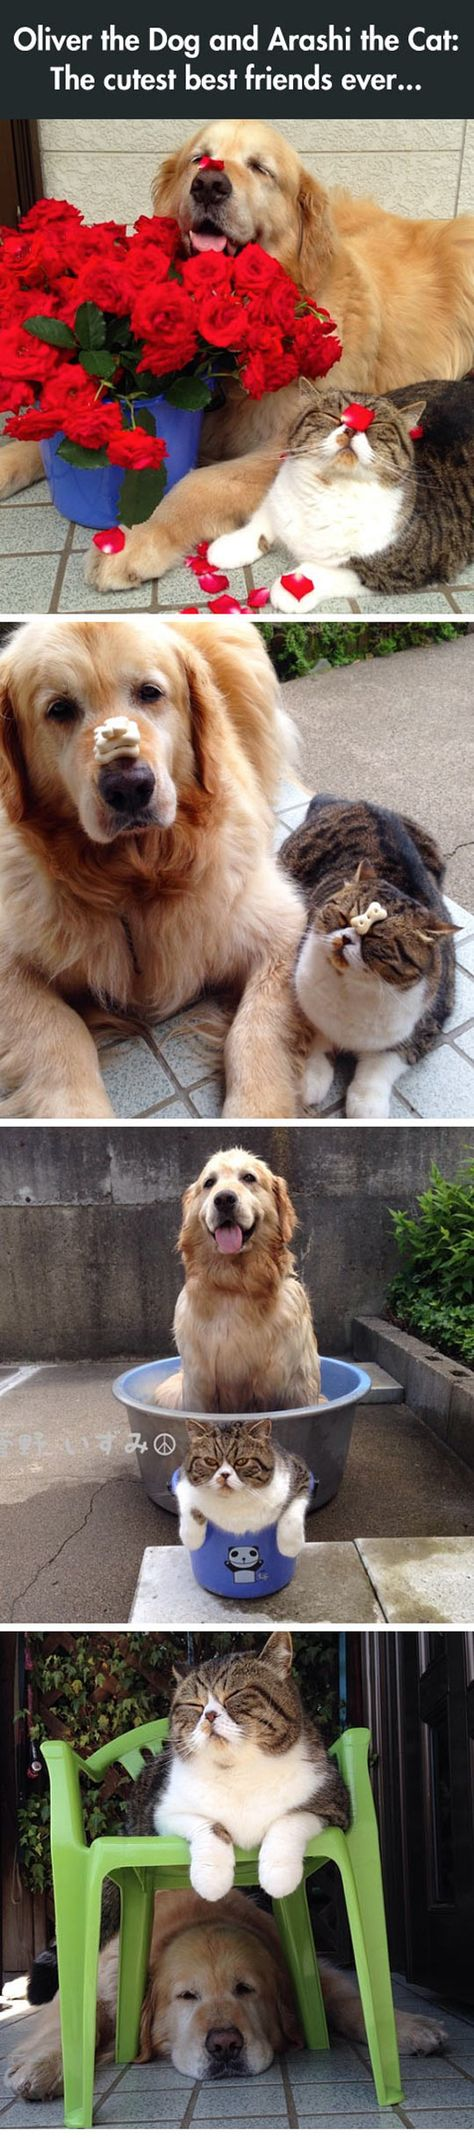 The Most Adorable Best Friends Ever